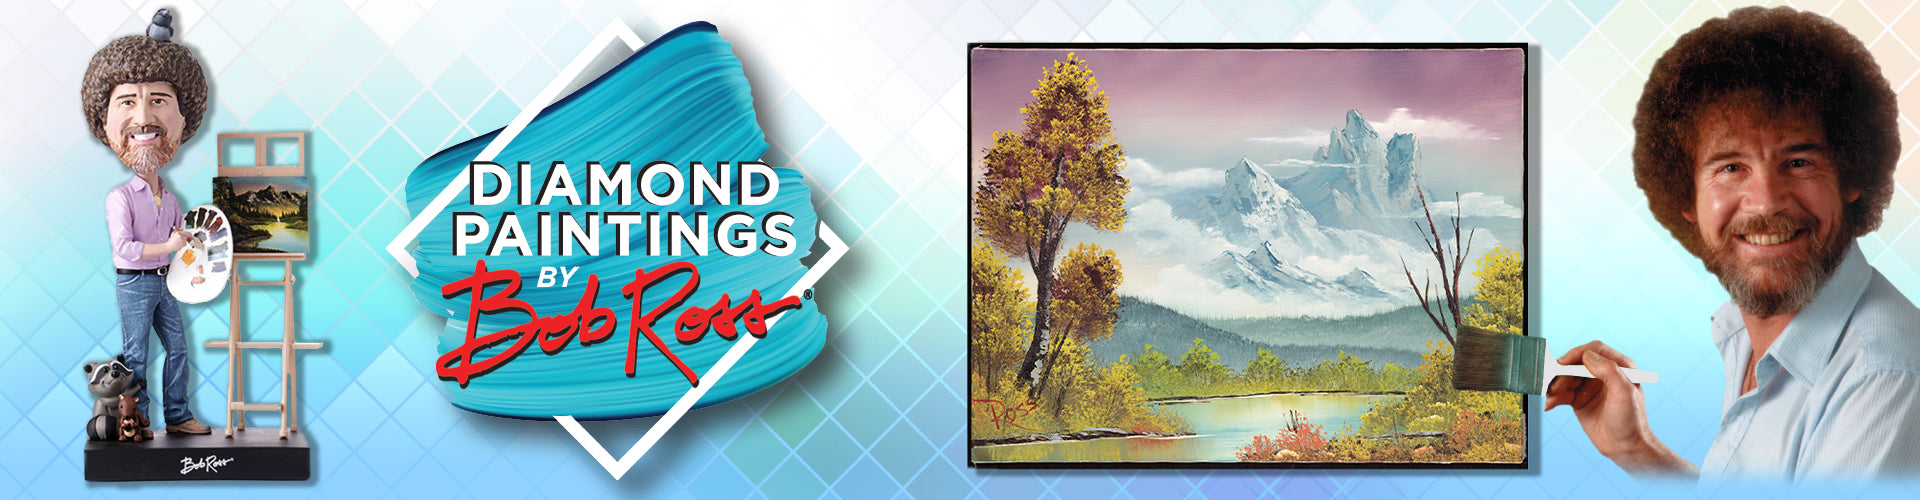 Enjoy our Bob Ross collection of bobble heads and Diamond Paintings